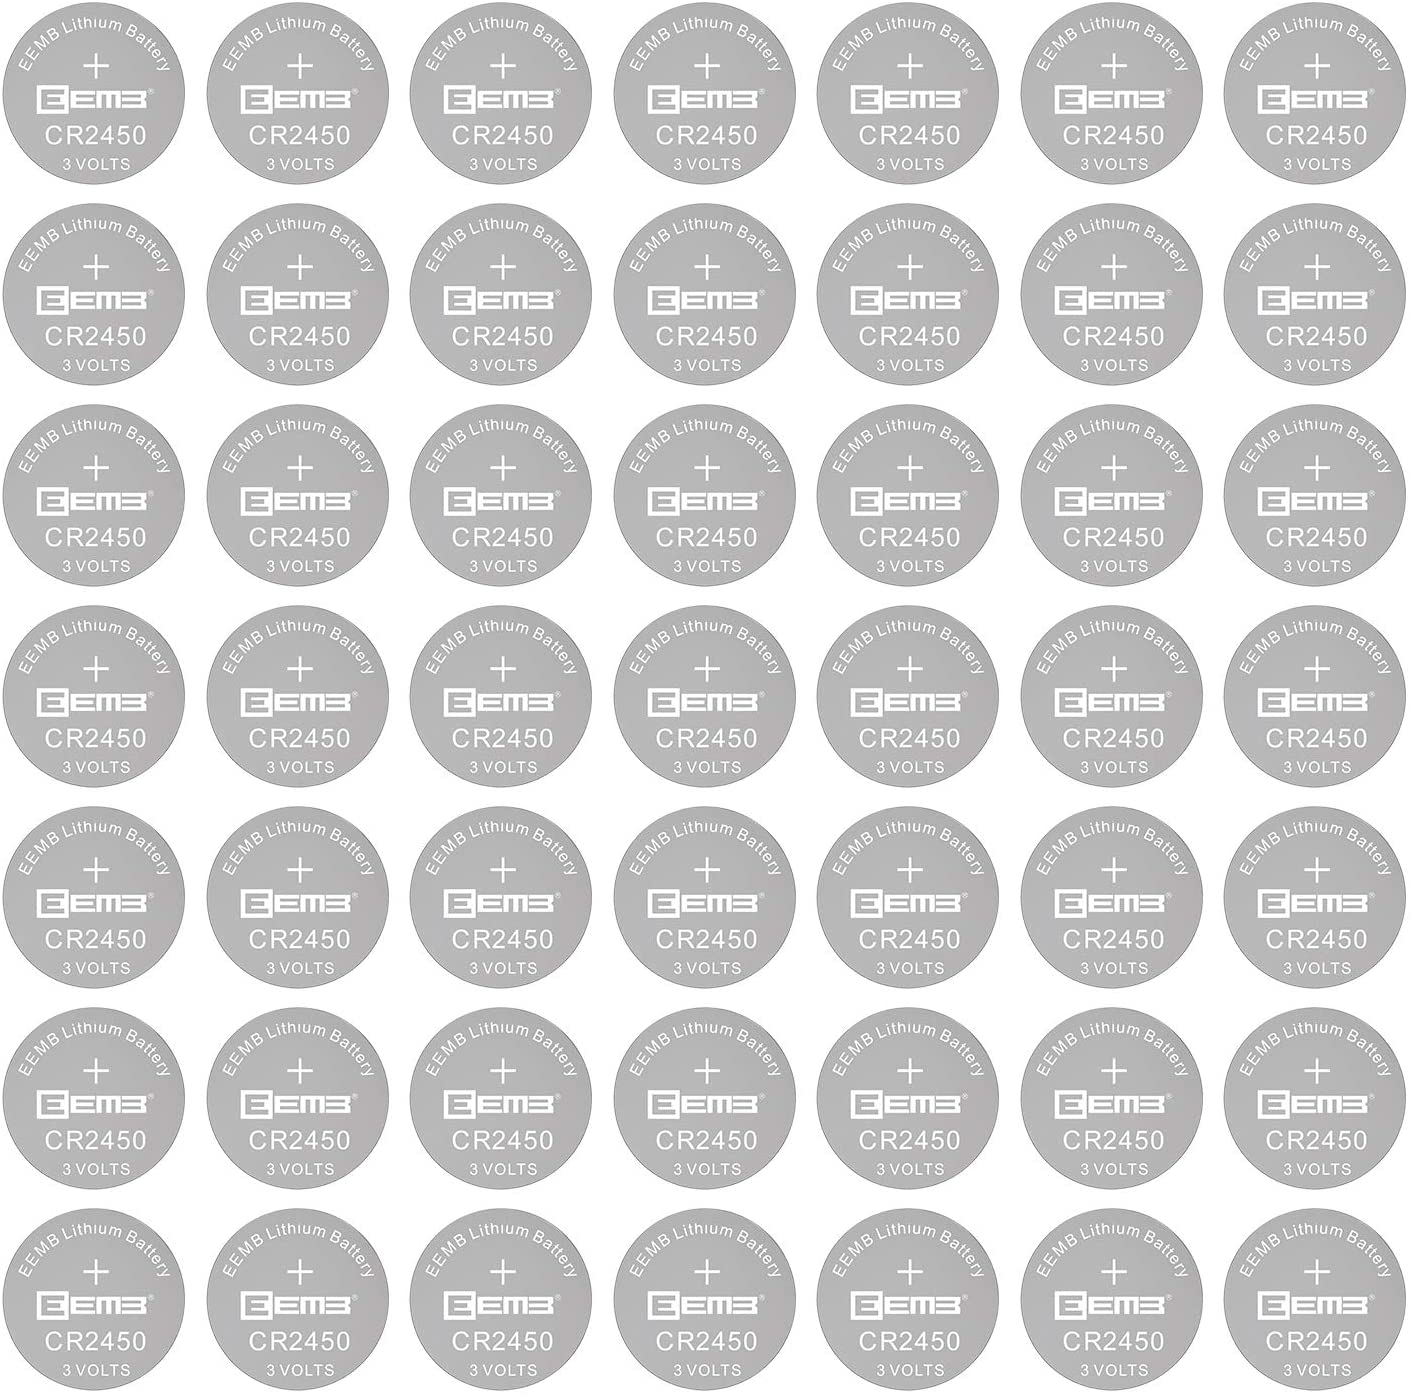 100PCS EEMB CR2450 Lithium 3V Button Coin Cell Battery with Trusted Quality 550mAh Non-Rechargeable UL Certified